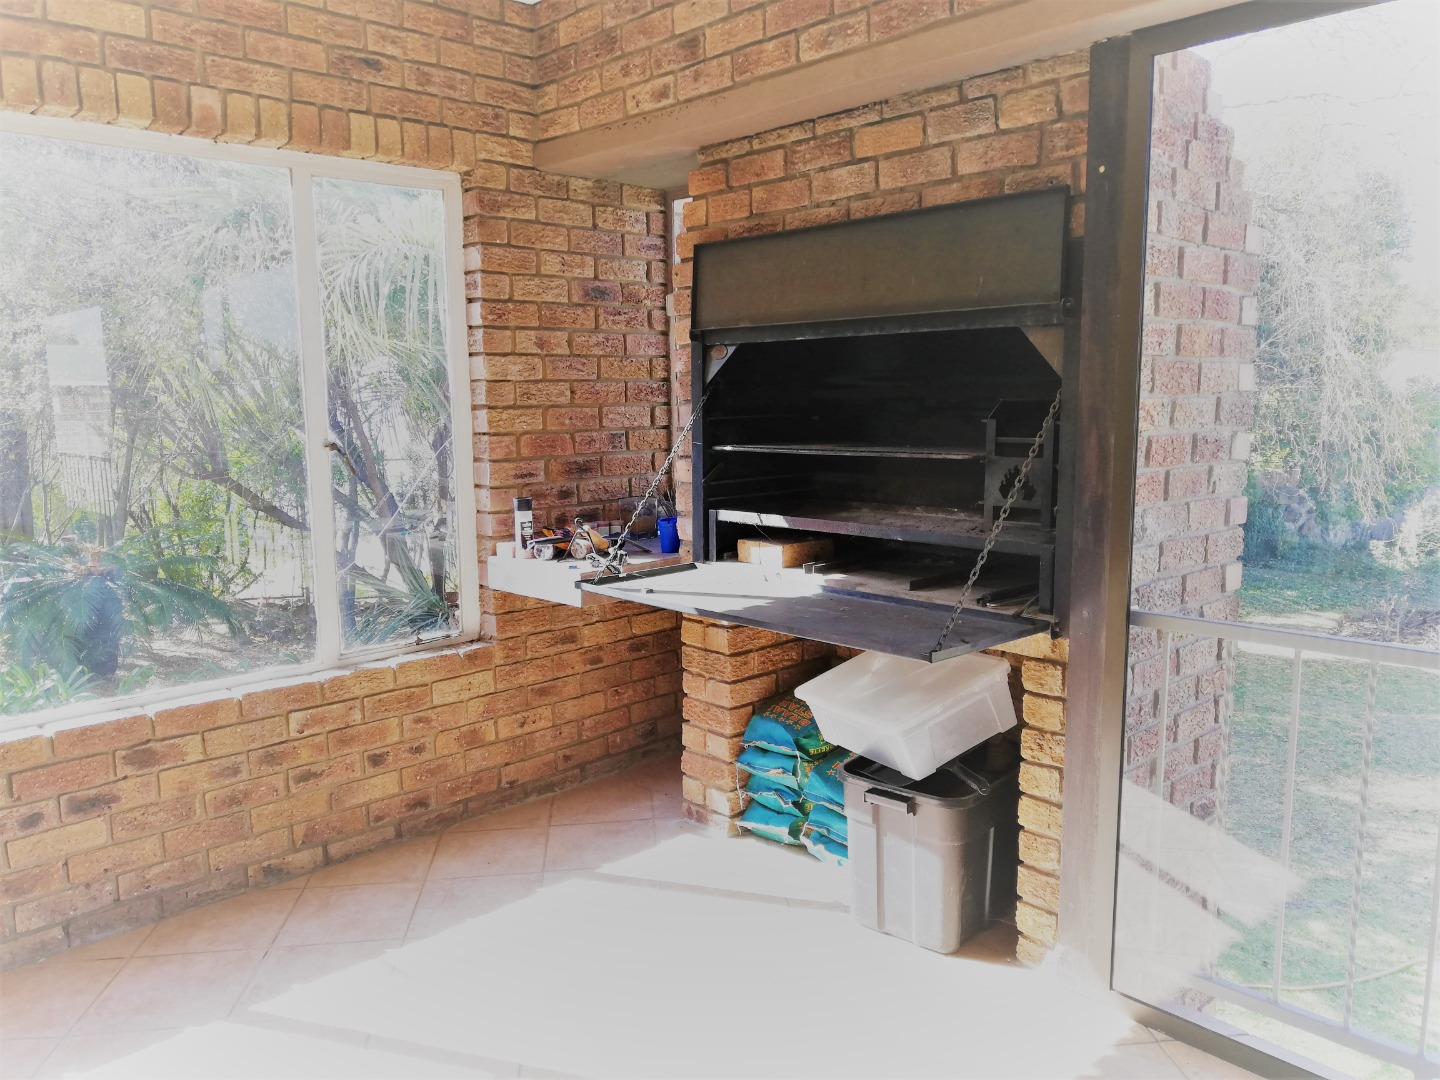 5 Bedroom House For Sale in Vaal Marina